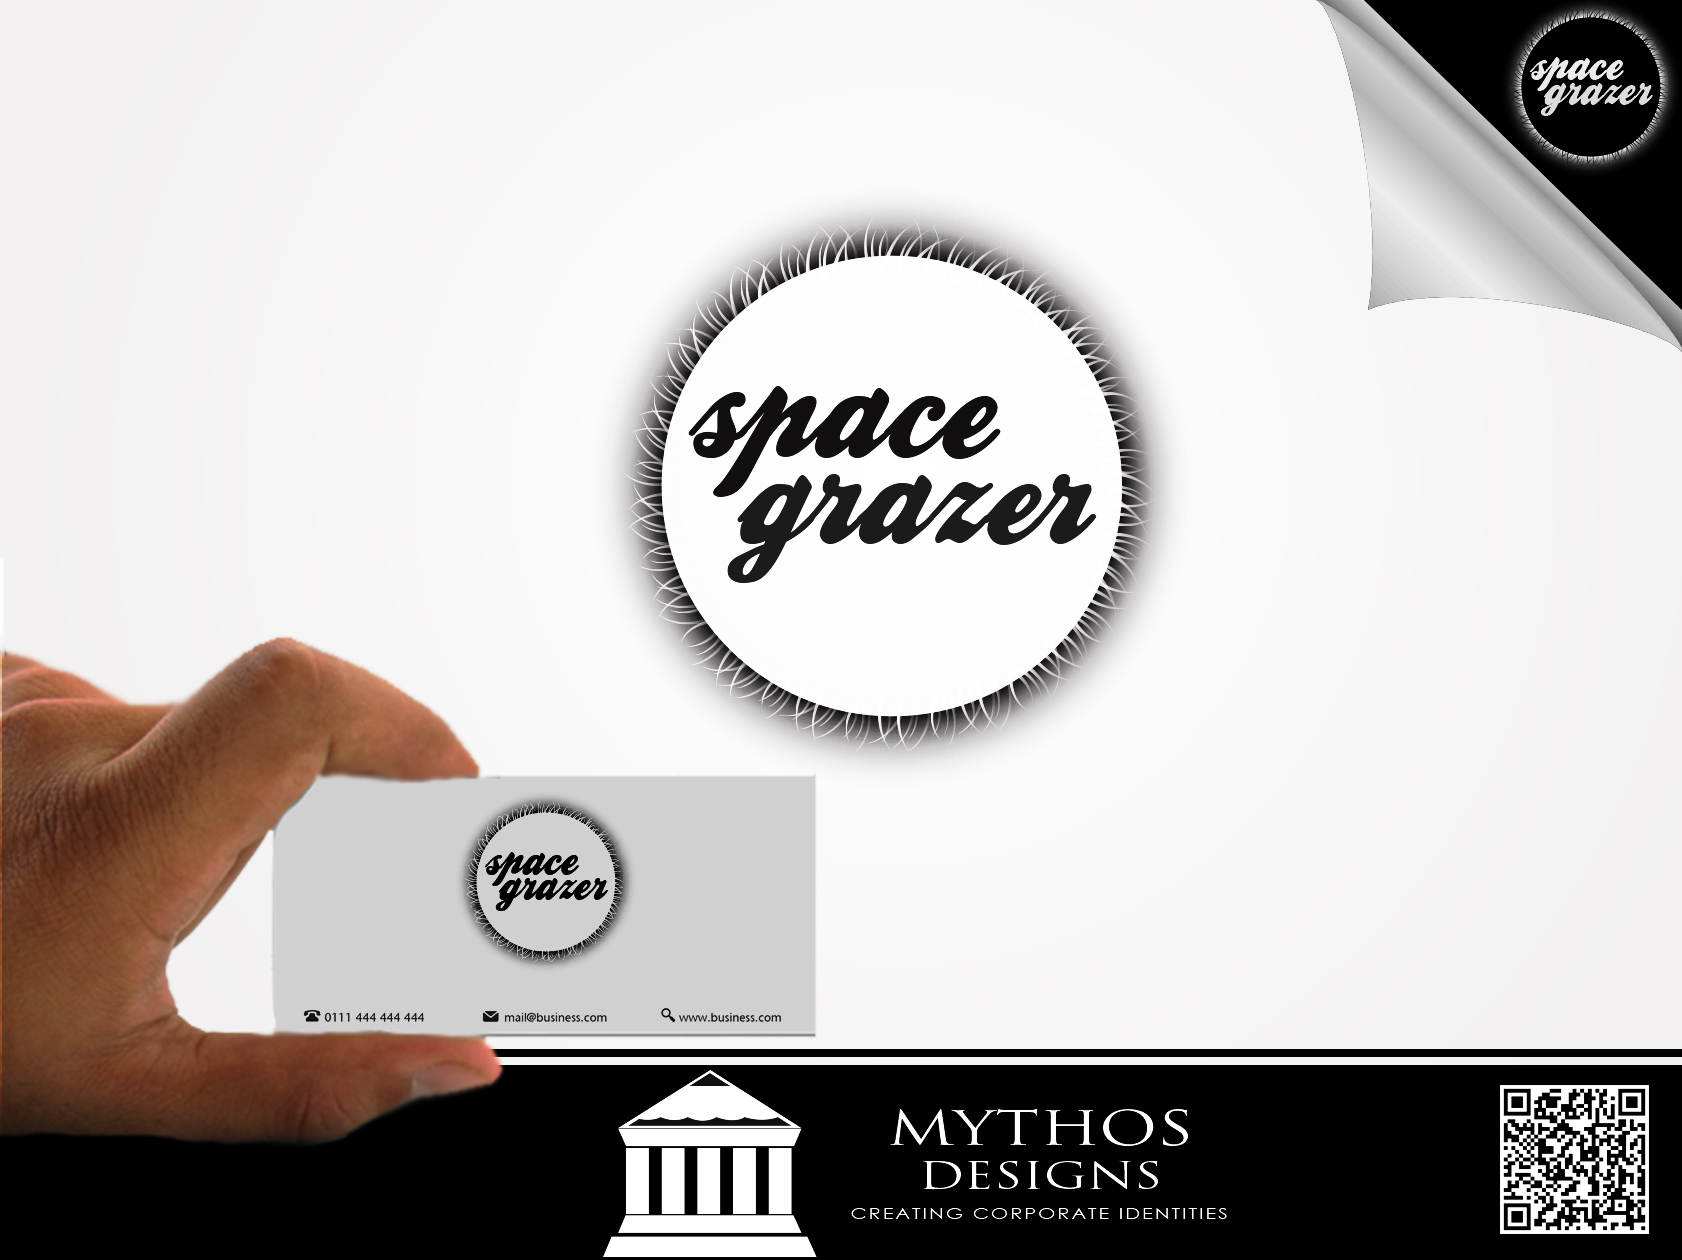 Logo Design by Mythos Designs - Entry No. 30 in the Logo Design Contest Fun Logo Design for Spacegrazer.